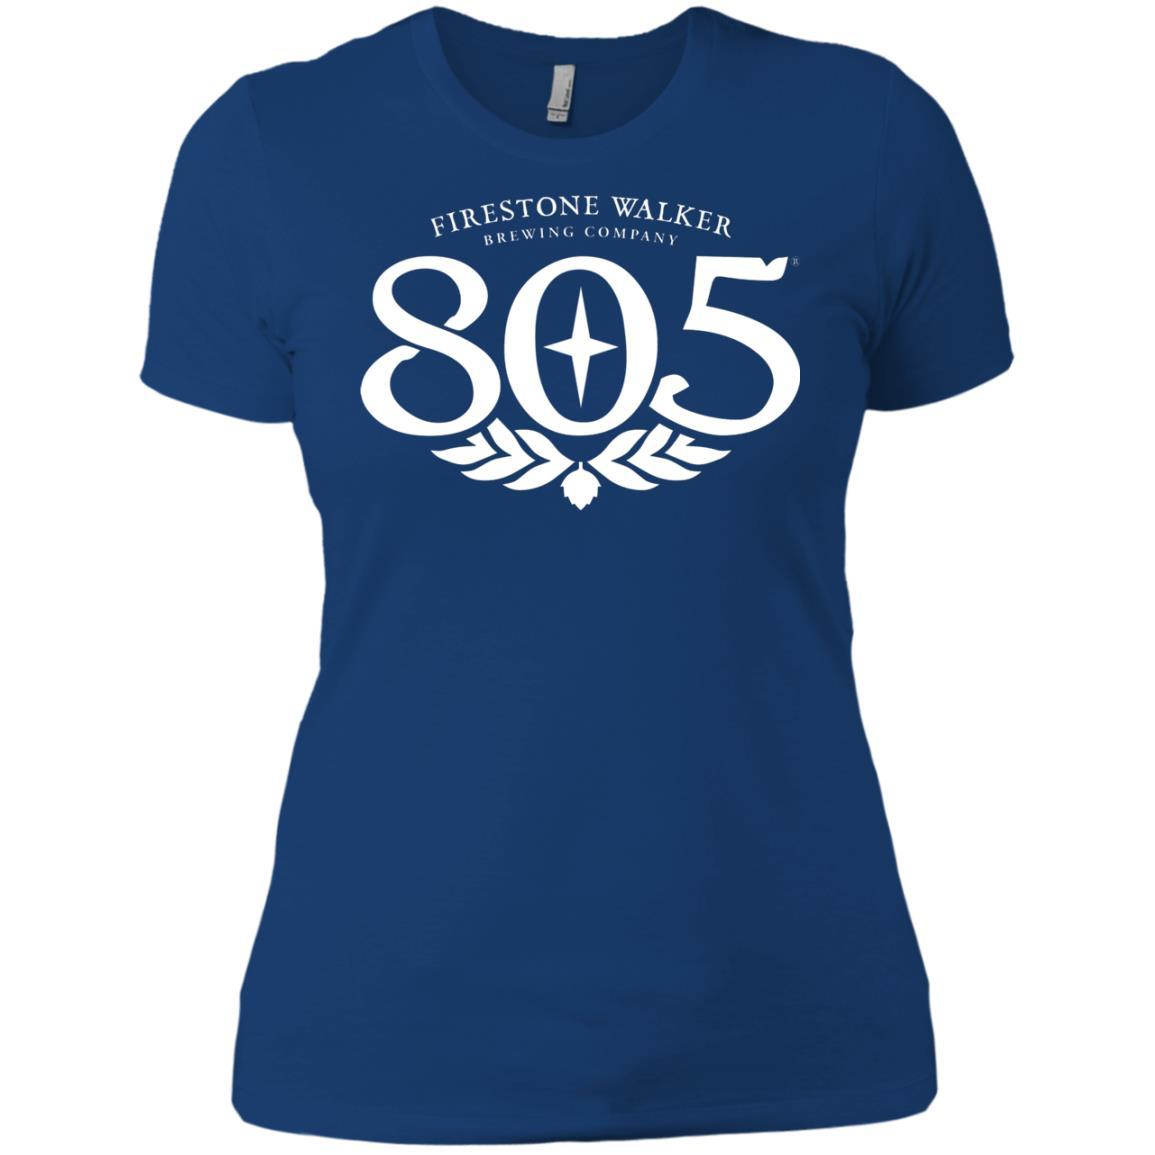 805 Beer - Ladies' Boyfriend T-Shirt Style / Color / Size